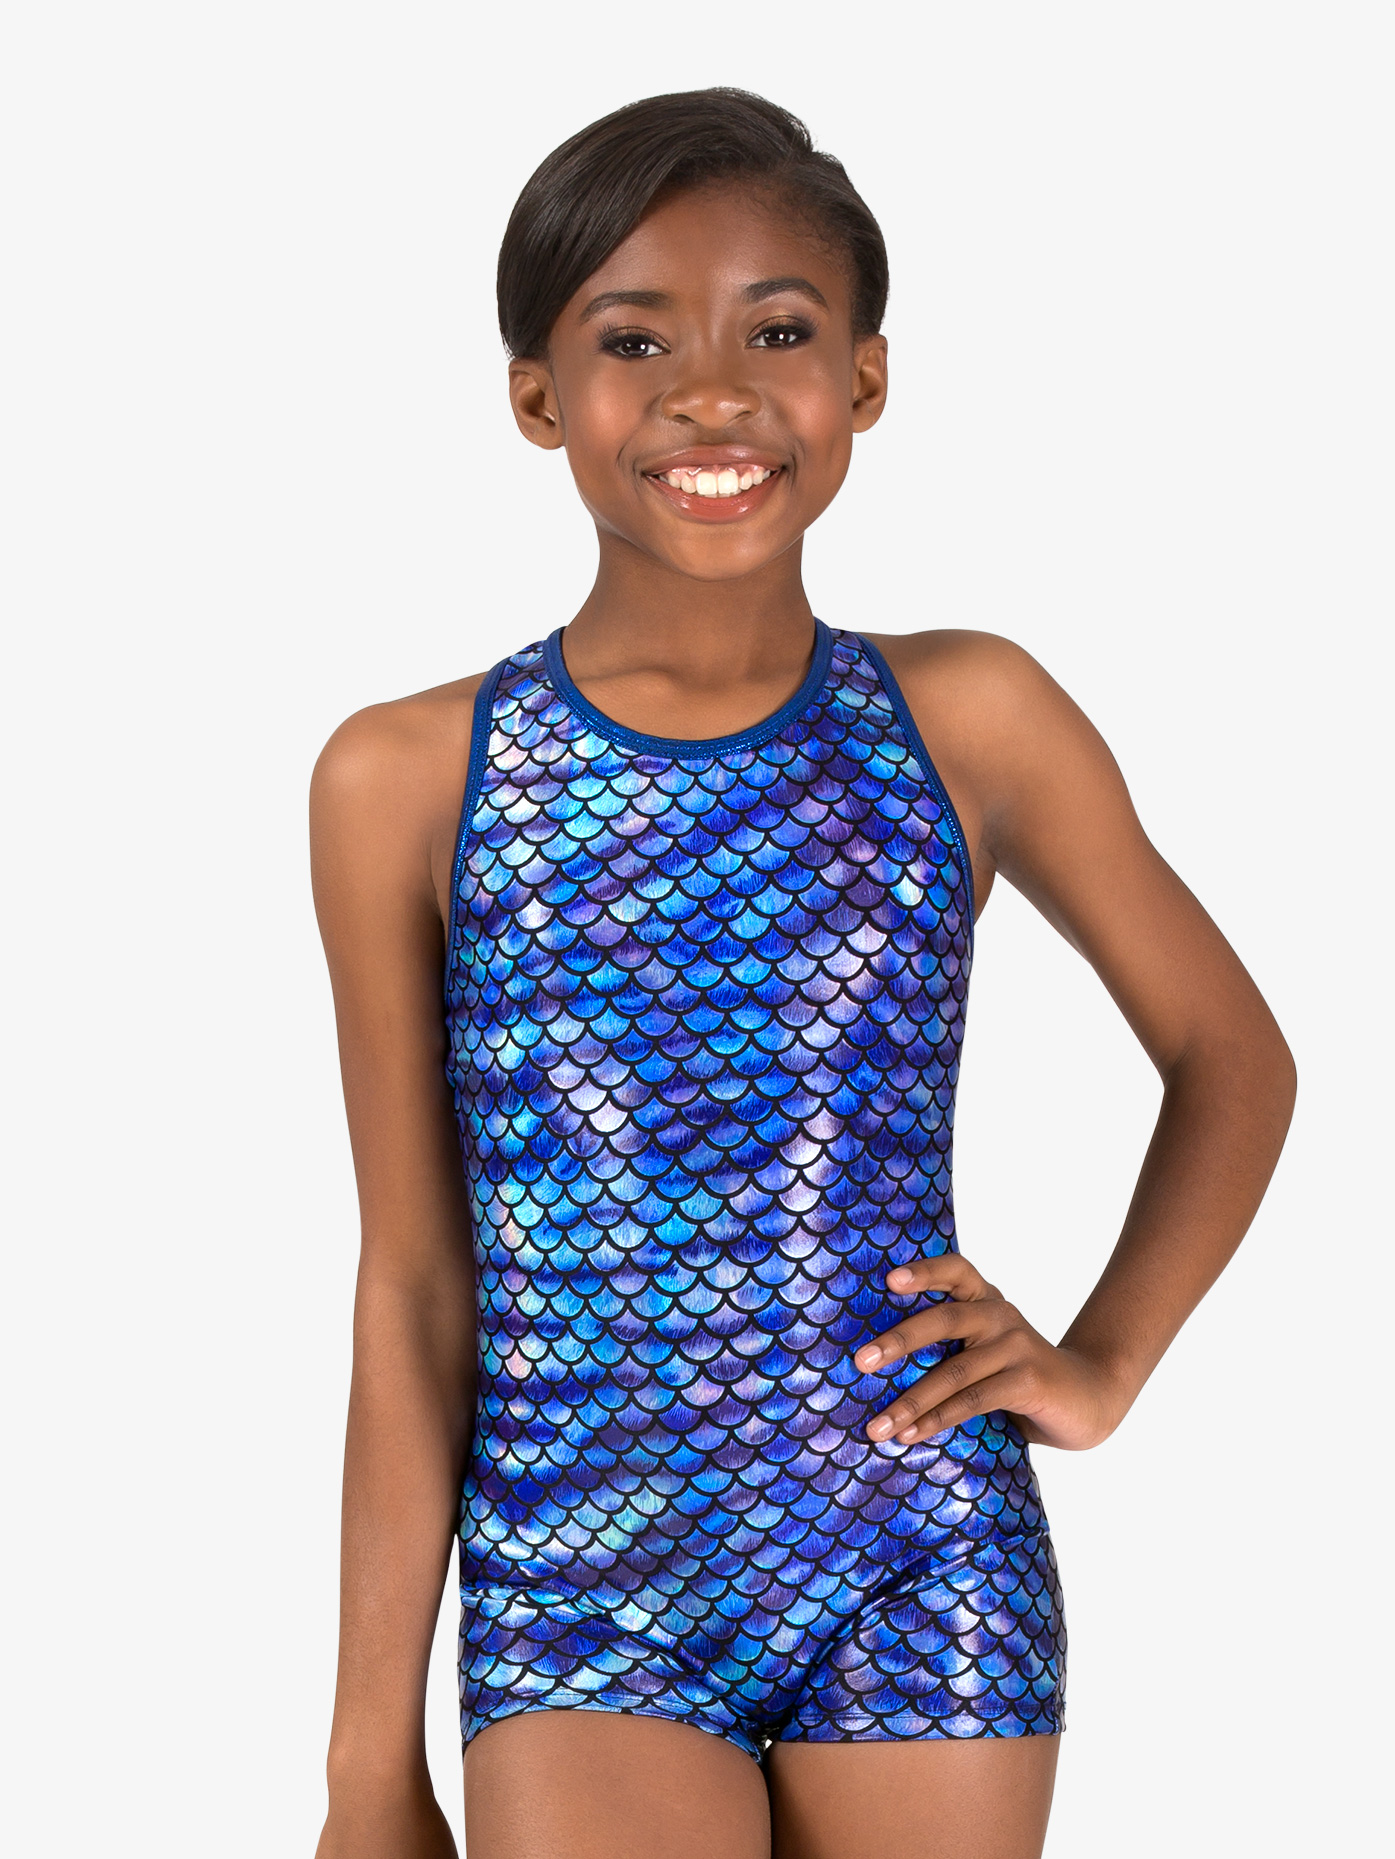 Perfect Balance Girls Gymnastics Fish Scale Print Tank Shorty Unitard G690C